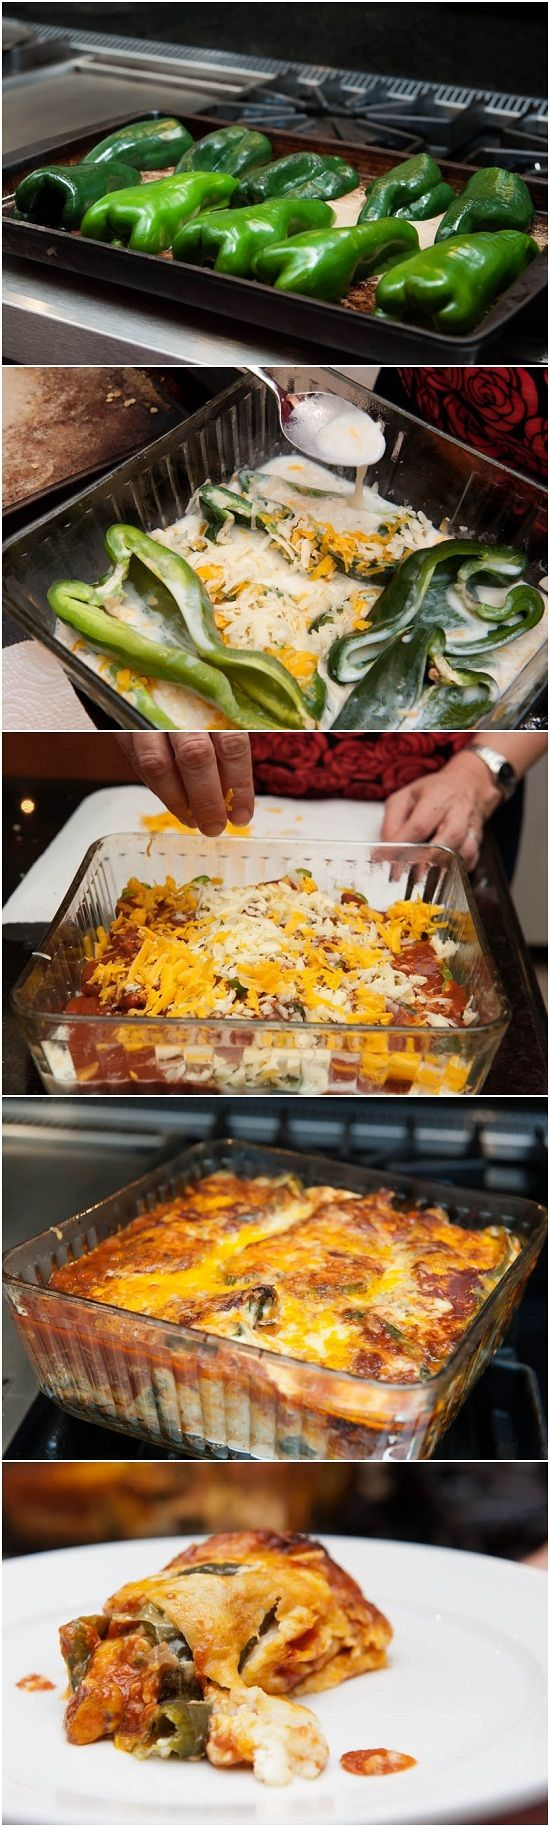 Easy Chiles Rellenos Recipe: